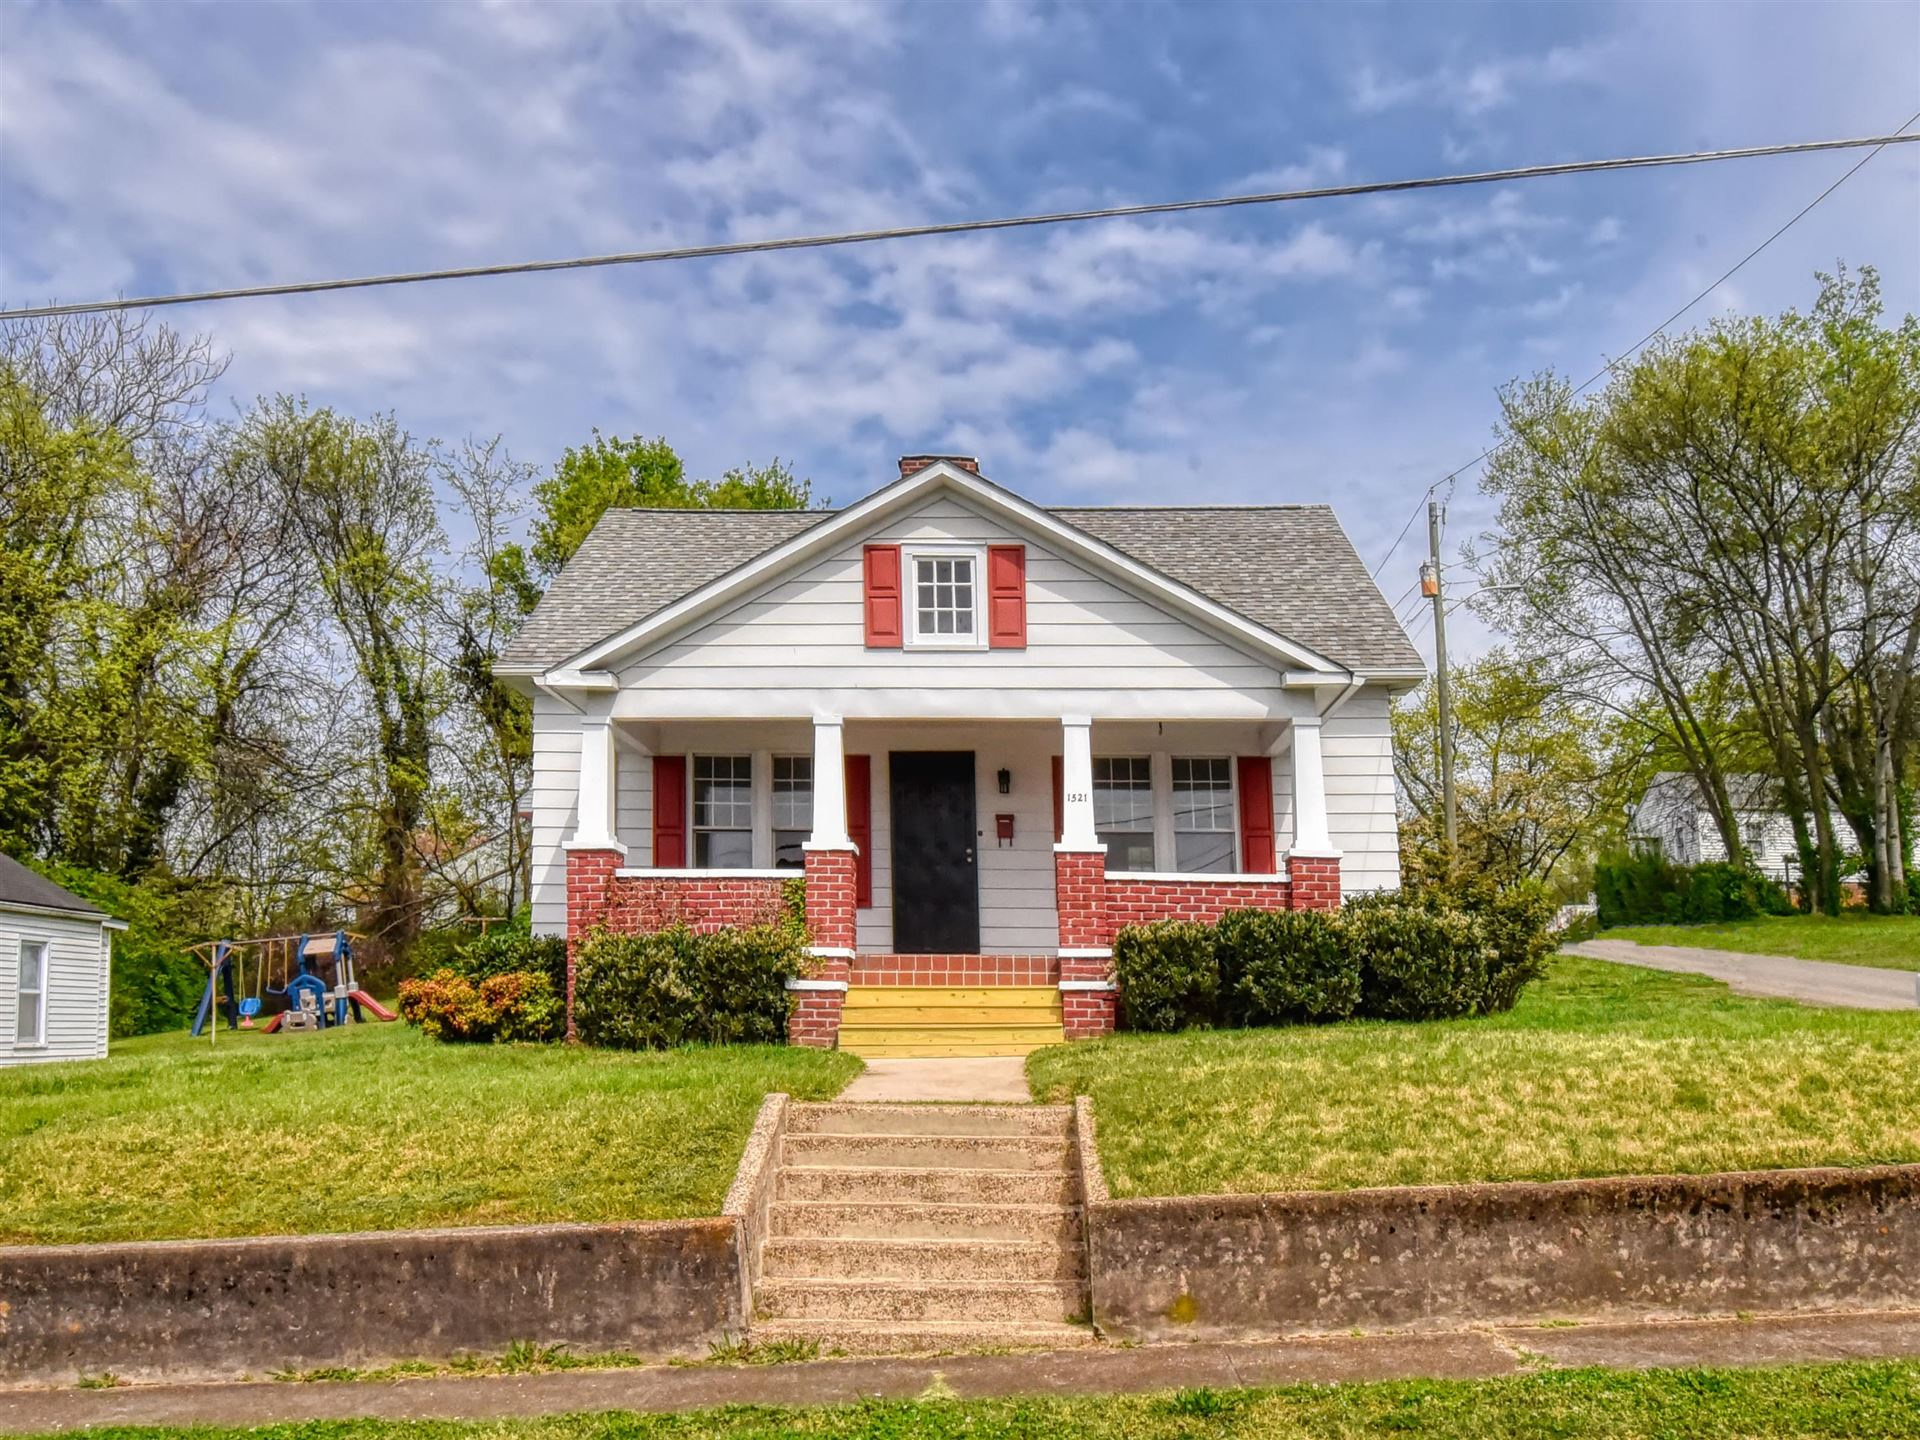 Photo of 1521 Lawson Ave, Knoxville, TN 37917 (MLS # 1149204)